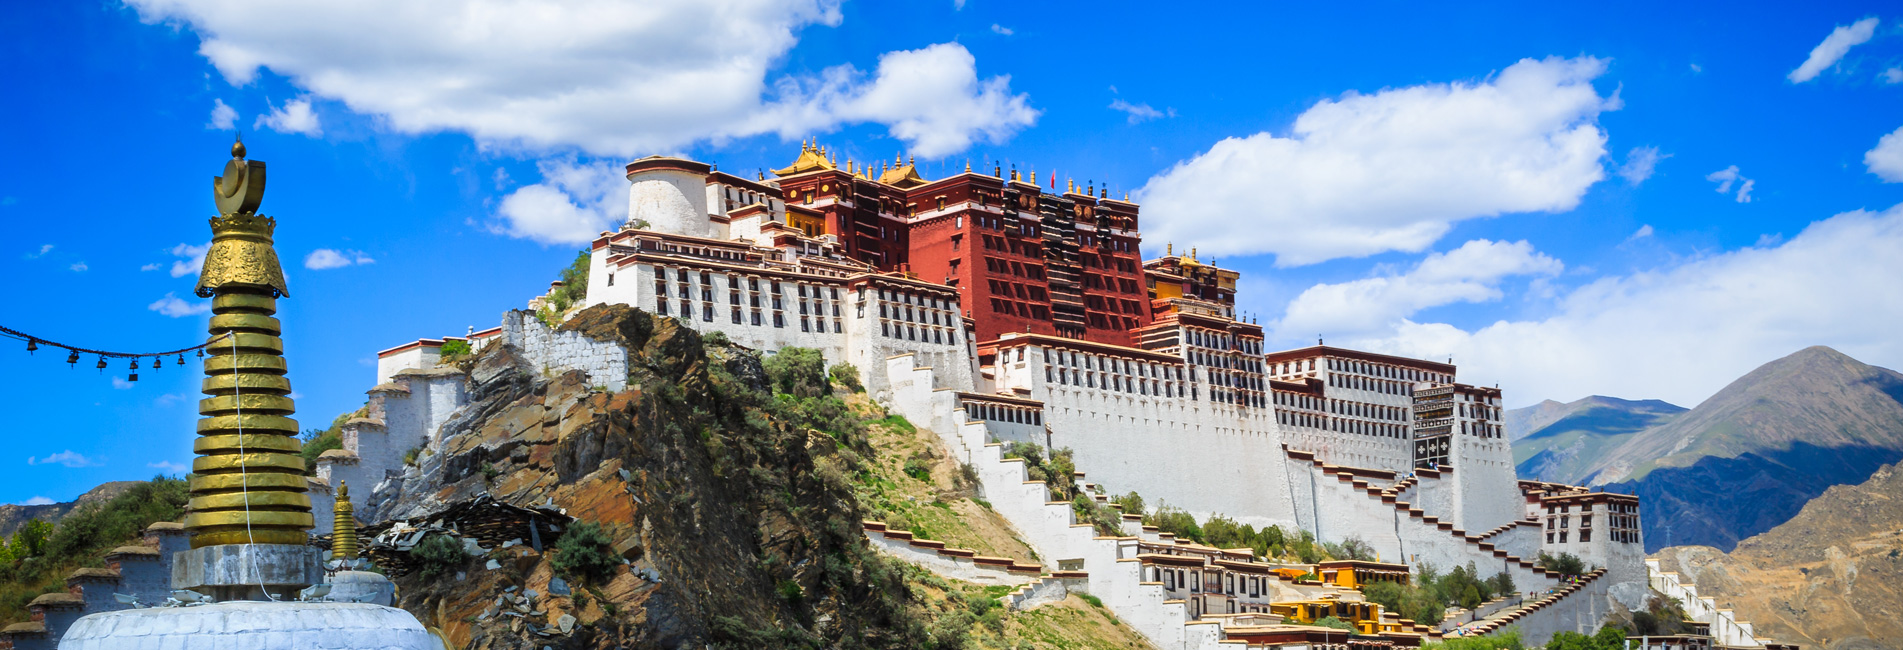 Tibet Tours Tailored Trips Discover The Roof Of The World